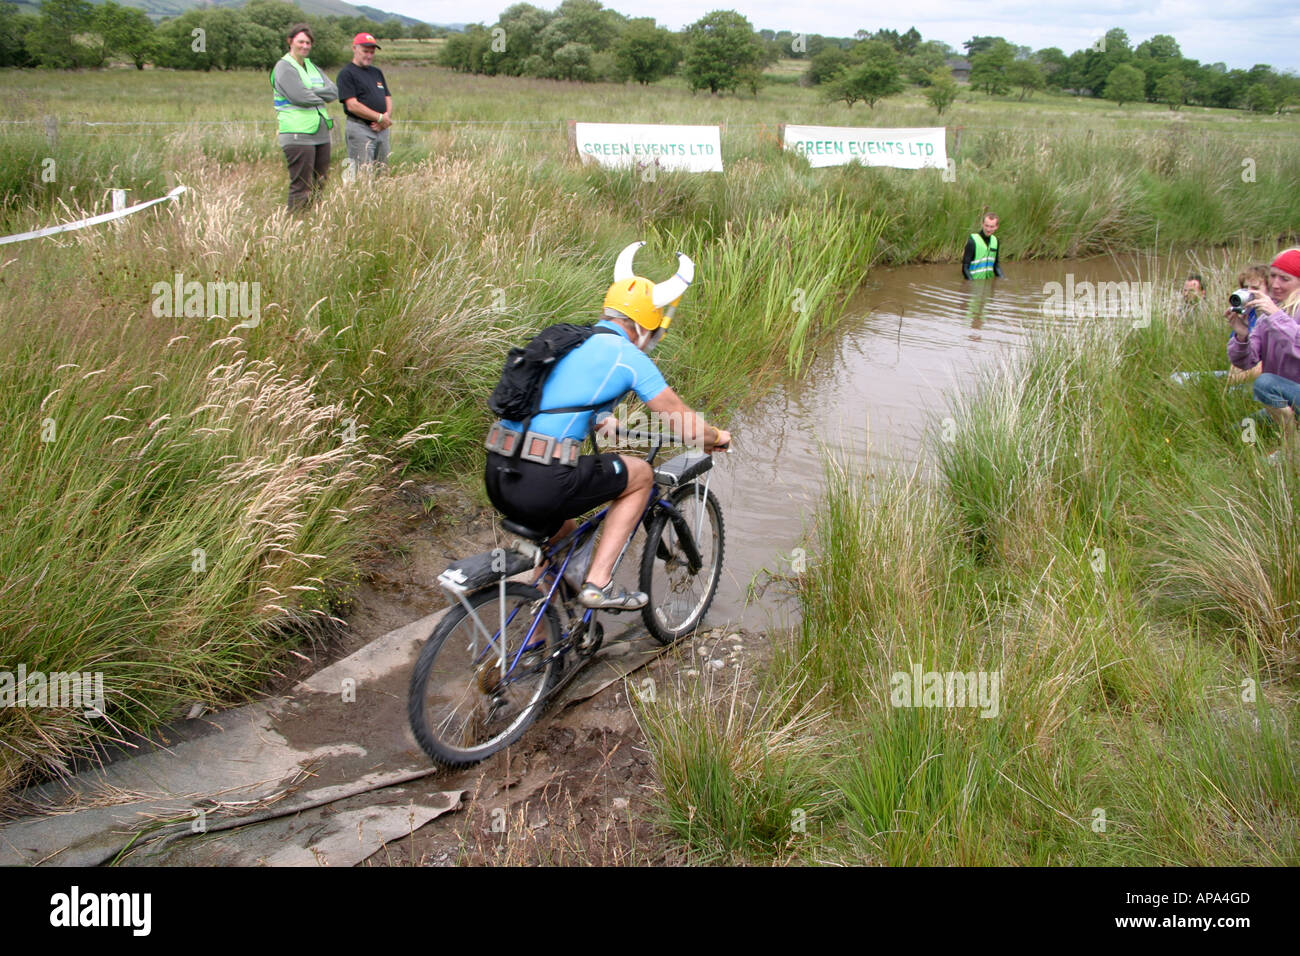 Roger Williams Competitor In World Mountain Bike Bog Snorkeling